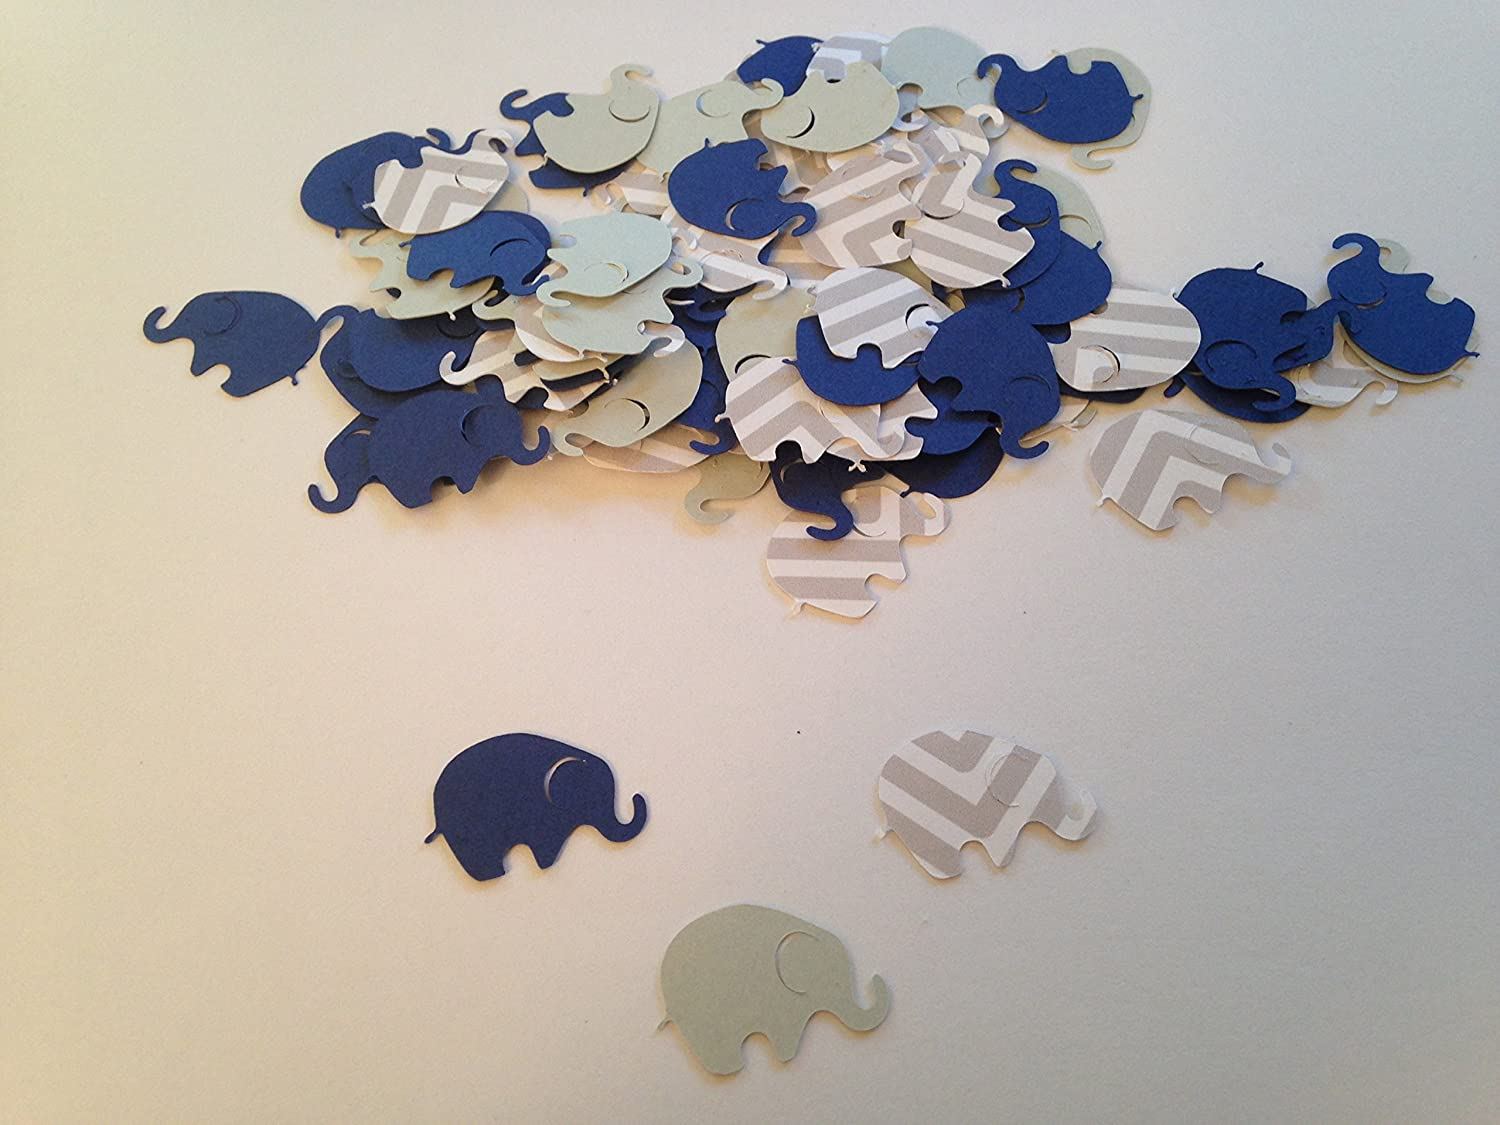 Elephant Baby Shower, Elephant Confetti, Gray Chevron Navy Gray, Sip and See, Elephant Cut Out, Elephant Theme, Elephant Party, 100 pieces